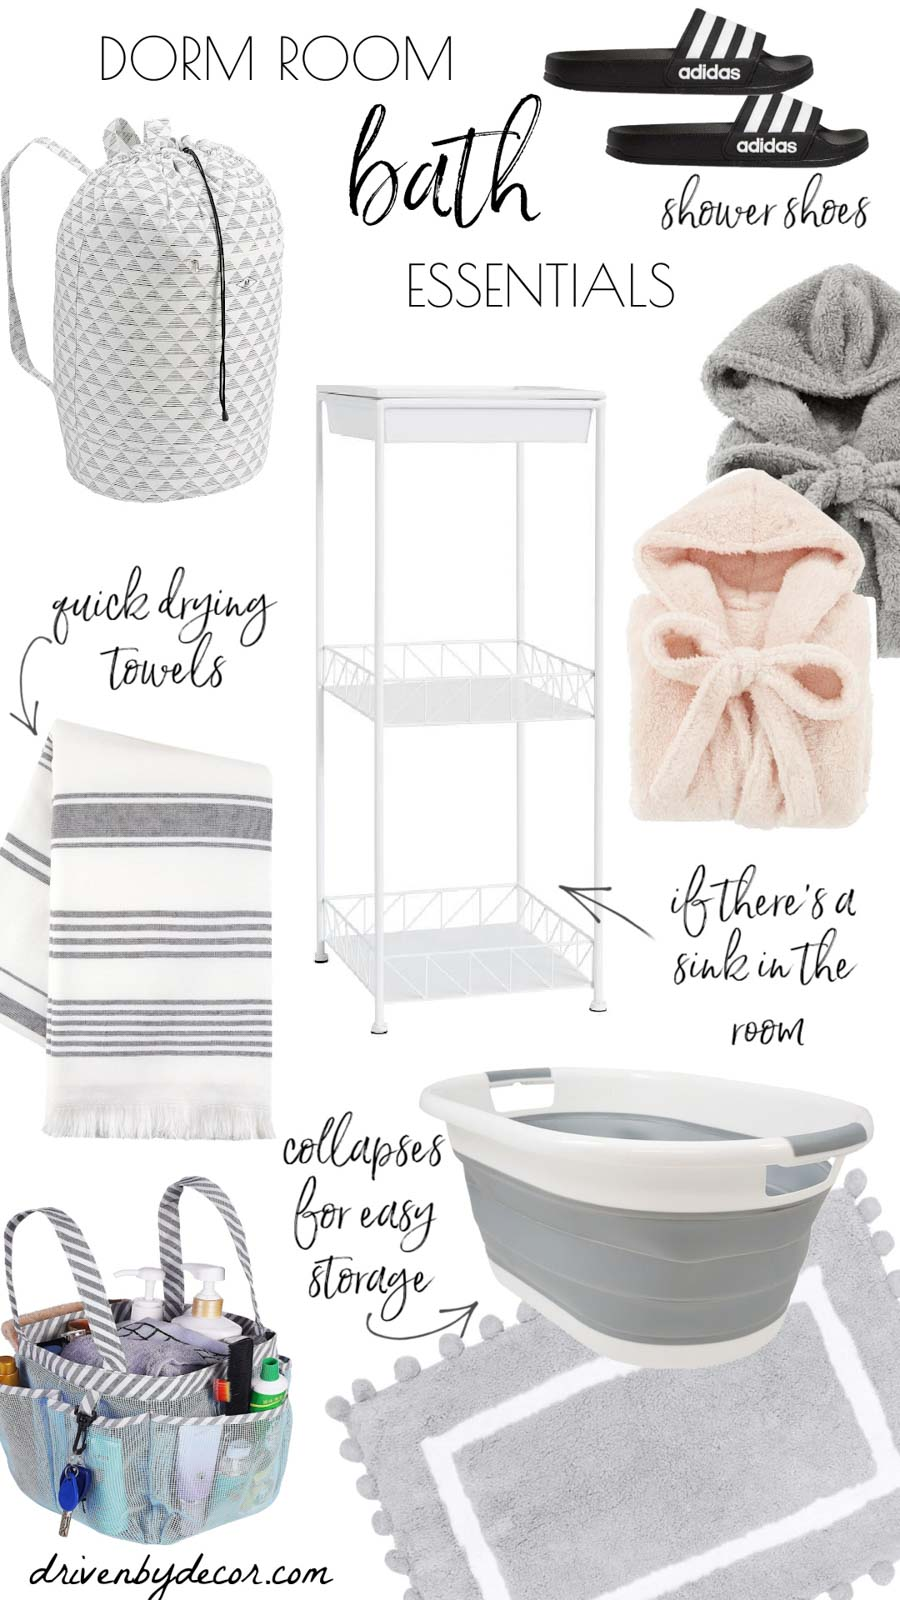 The dorm room essentials you need for laundry and the bath!